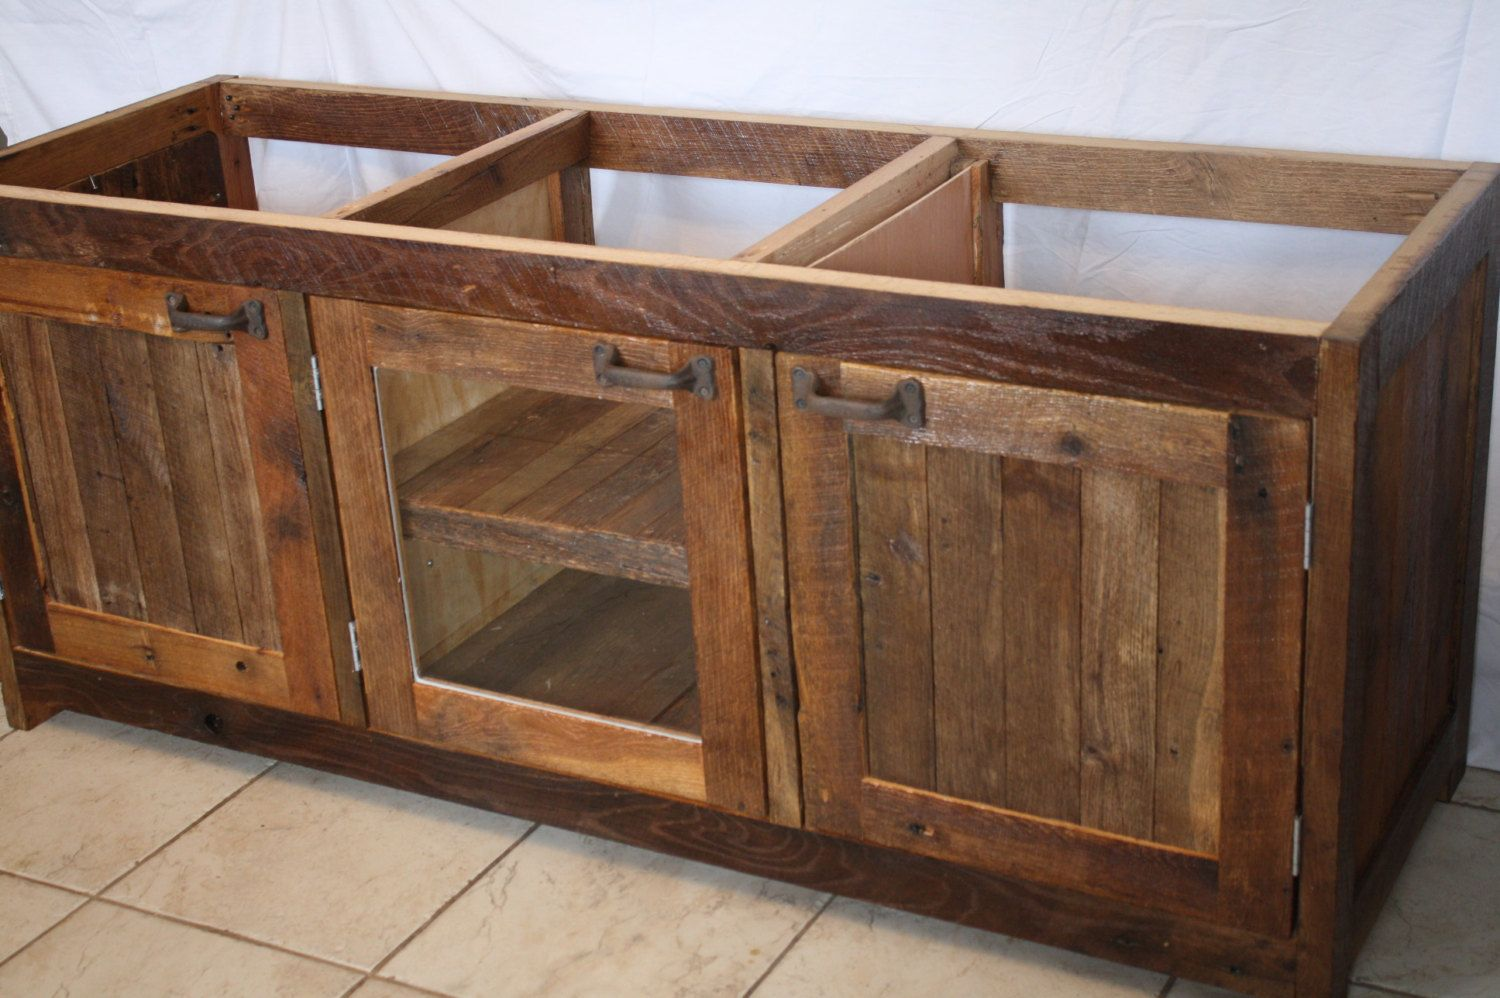 Your Custom Made Rustic Barn Wood Double Vanity Cabinet